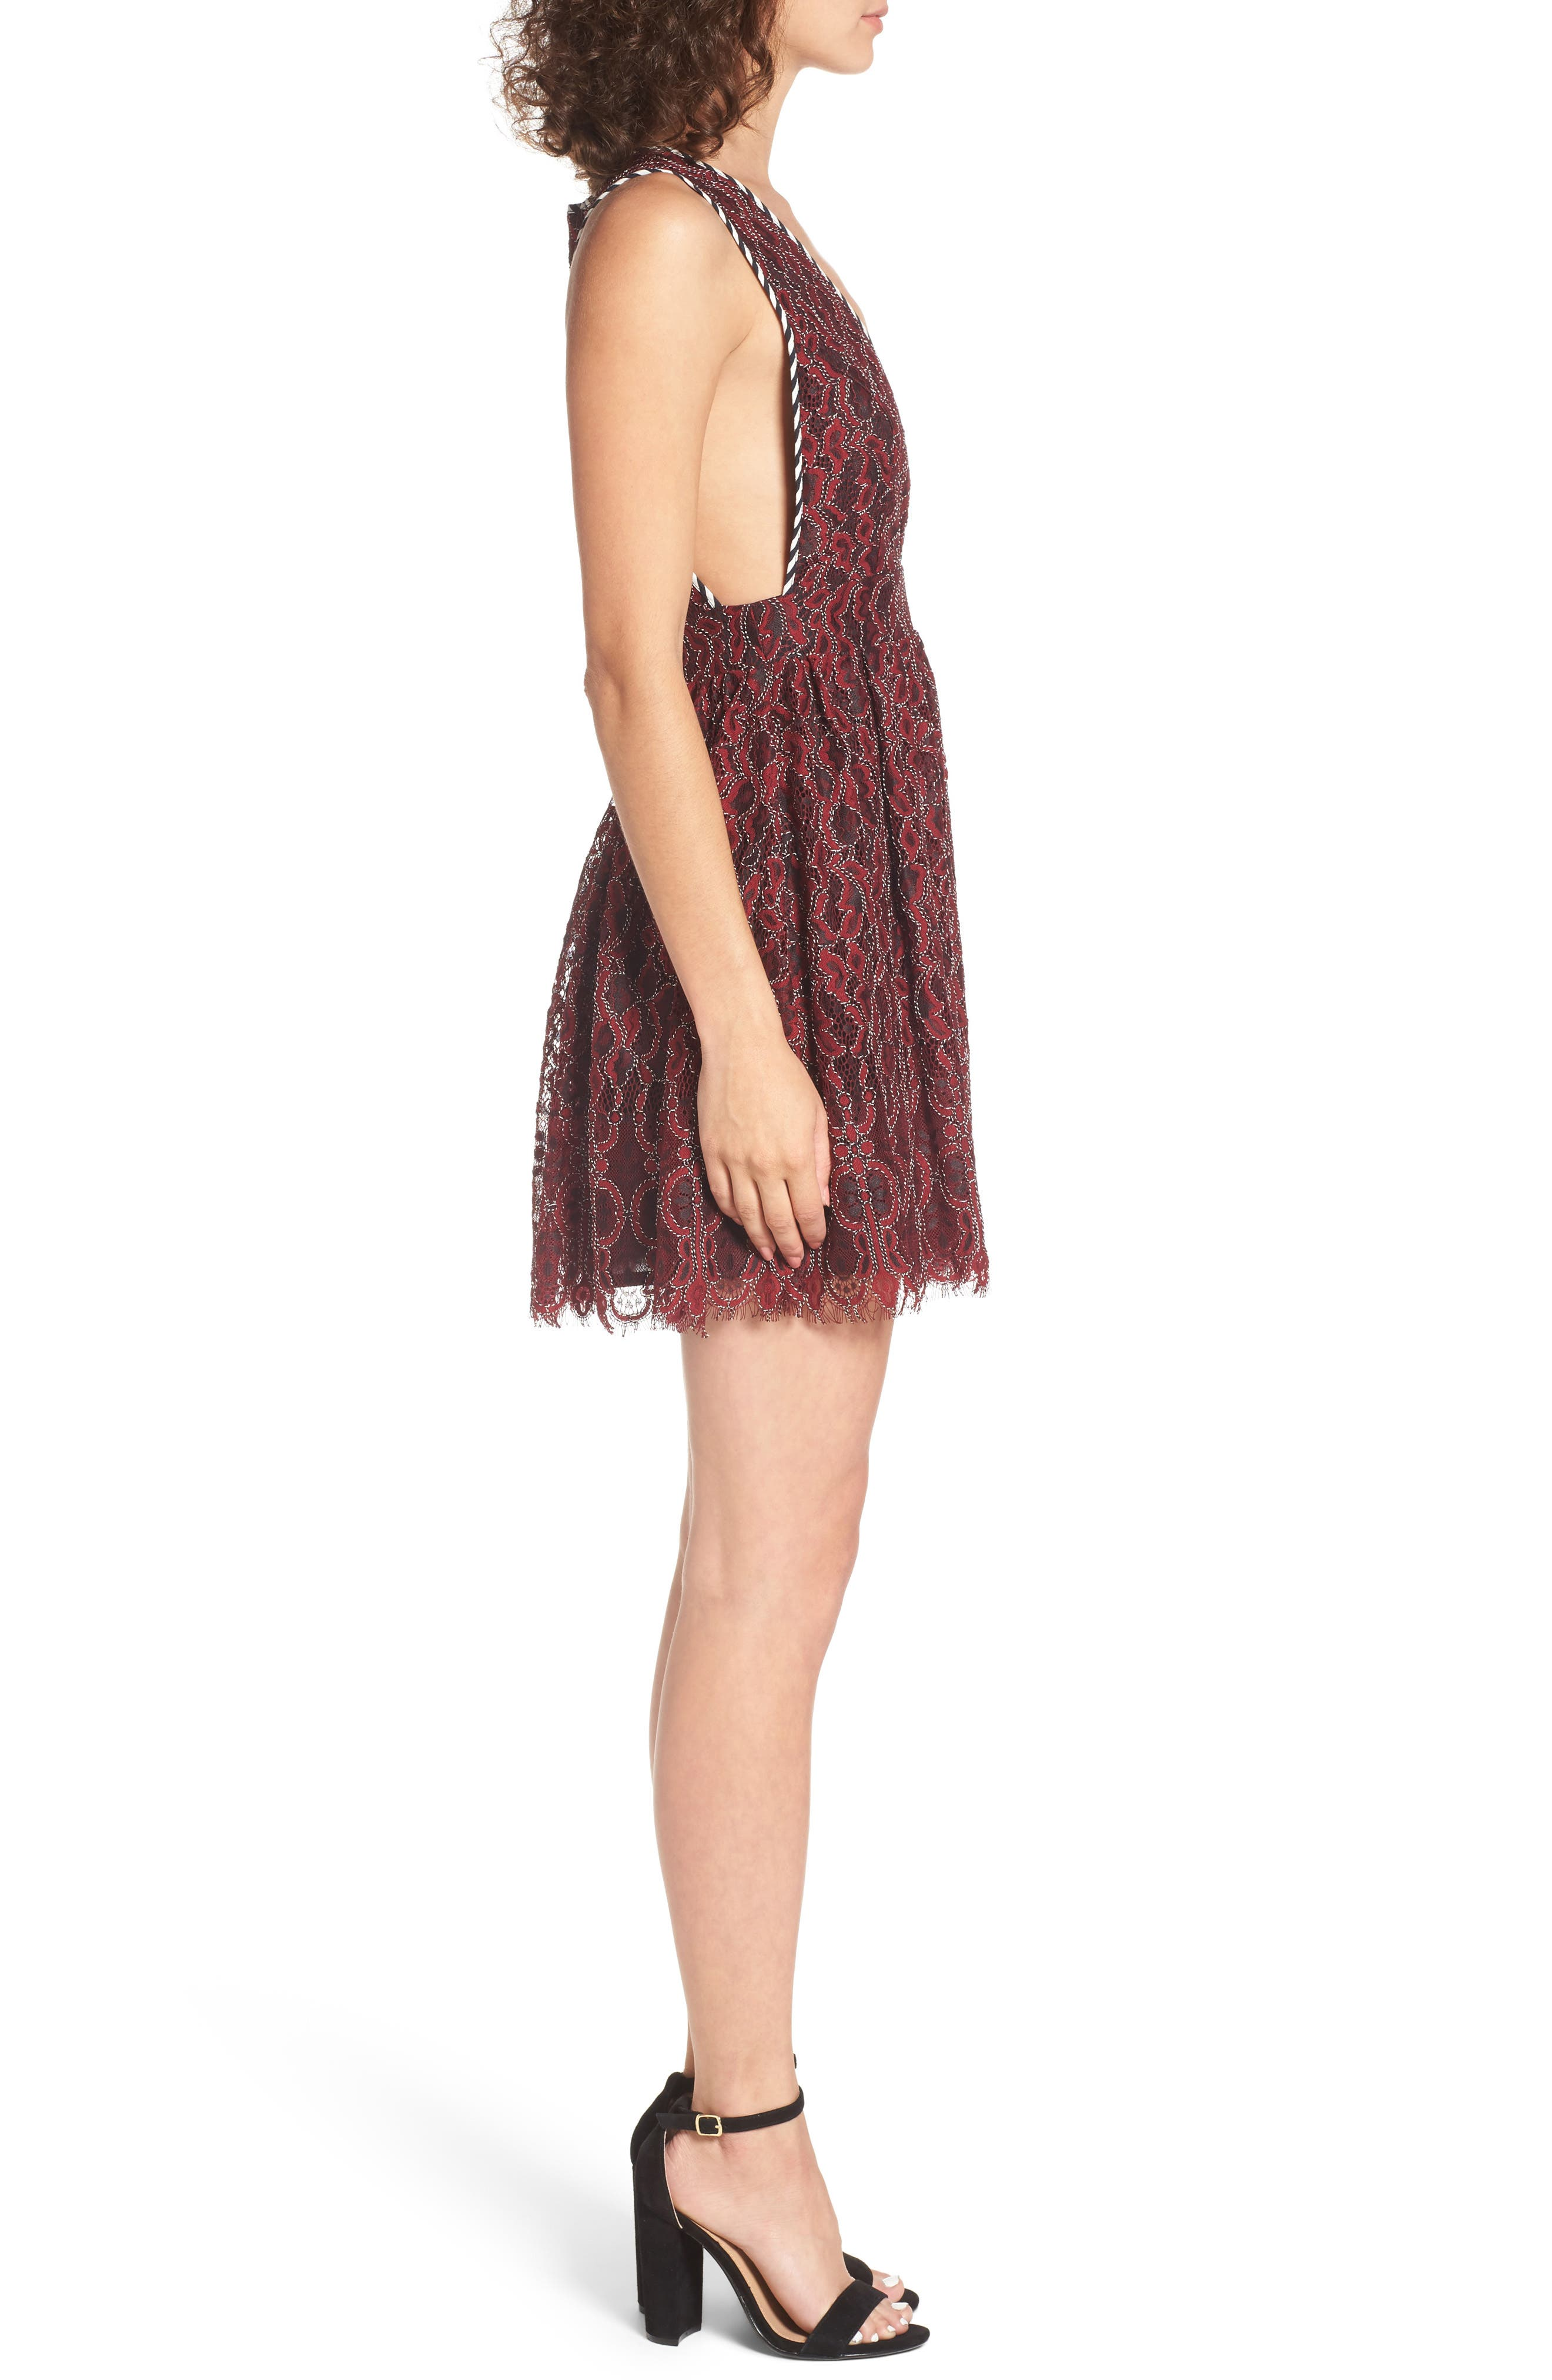 Starry Night Lace Minidress,                             Alternate thumbnail 3, color,                             931